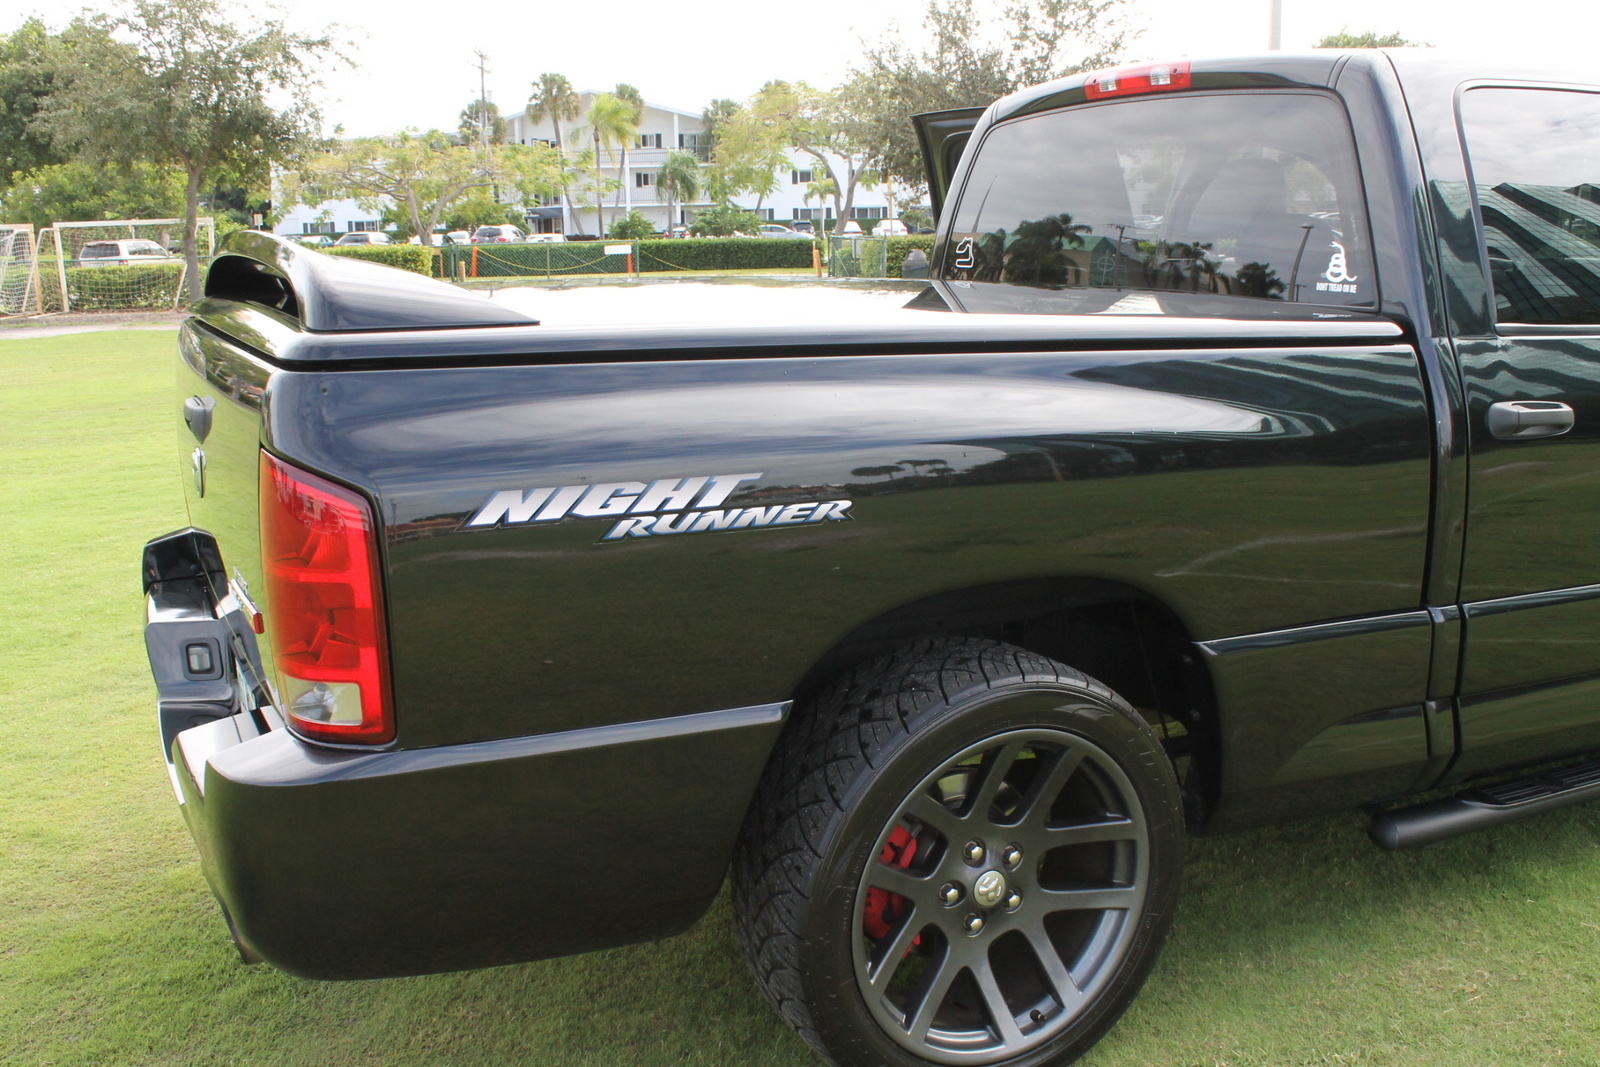 2006 dodge ram srt 10 night runner for sale car autos gallery. Black Bedroom Furniture Sets. Home Design Ideas